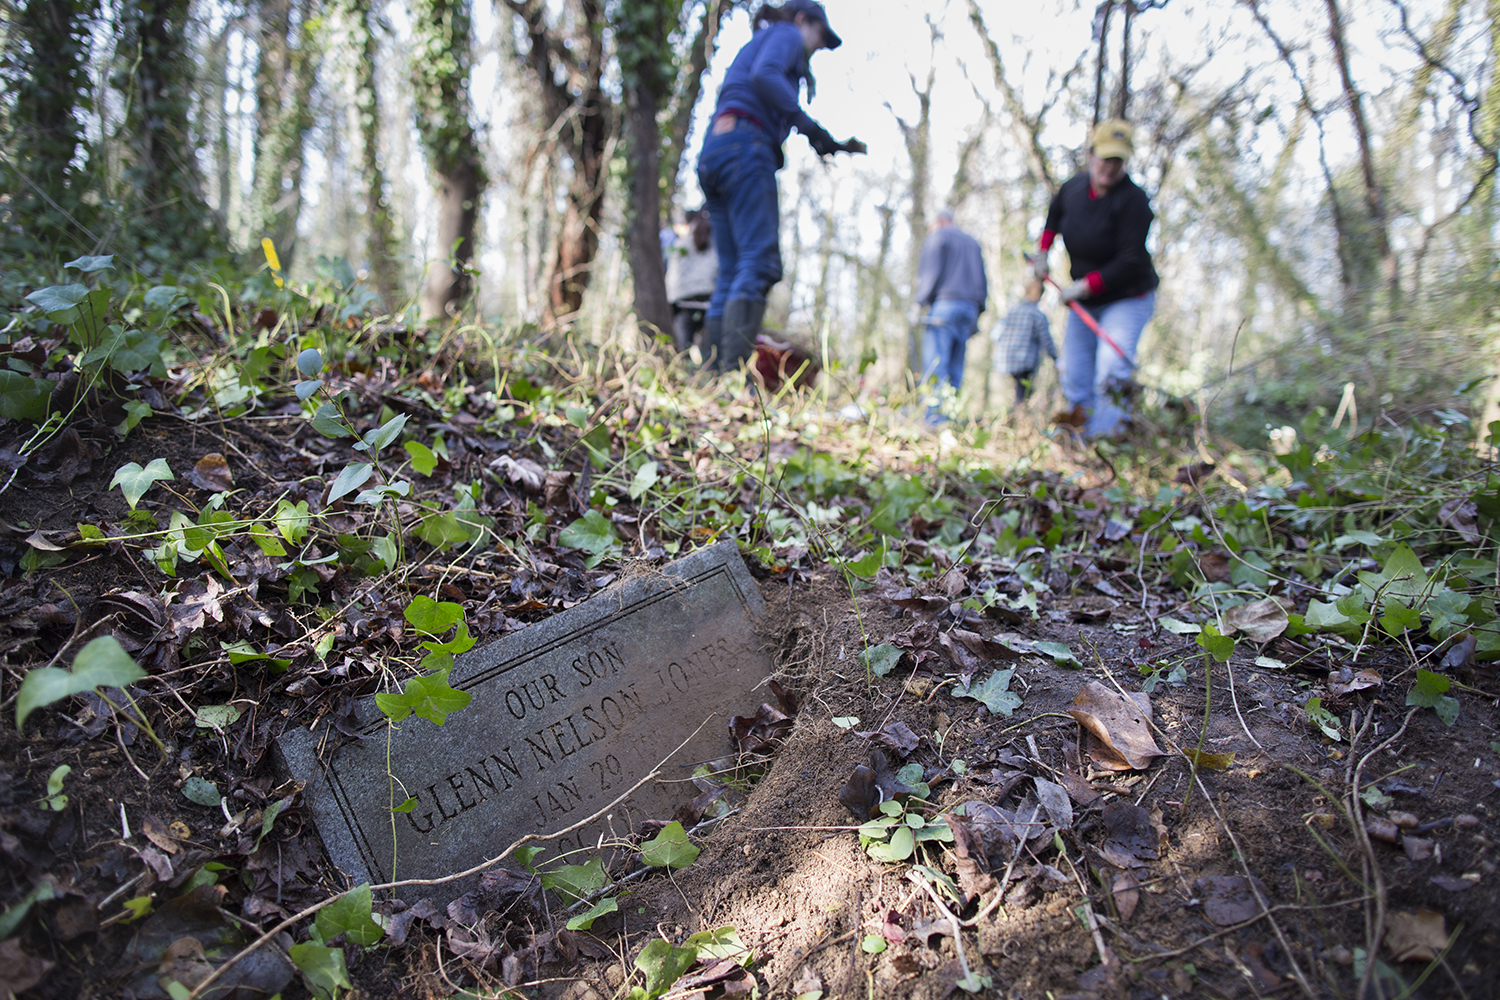 Grave of Glenn Nelson Jones, a young boy, revealed duringEast End Cemetery work day, January 2015.©brianpalmer.photos 2015